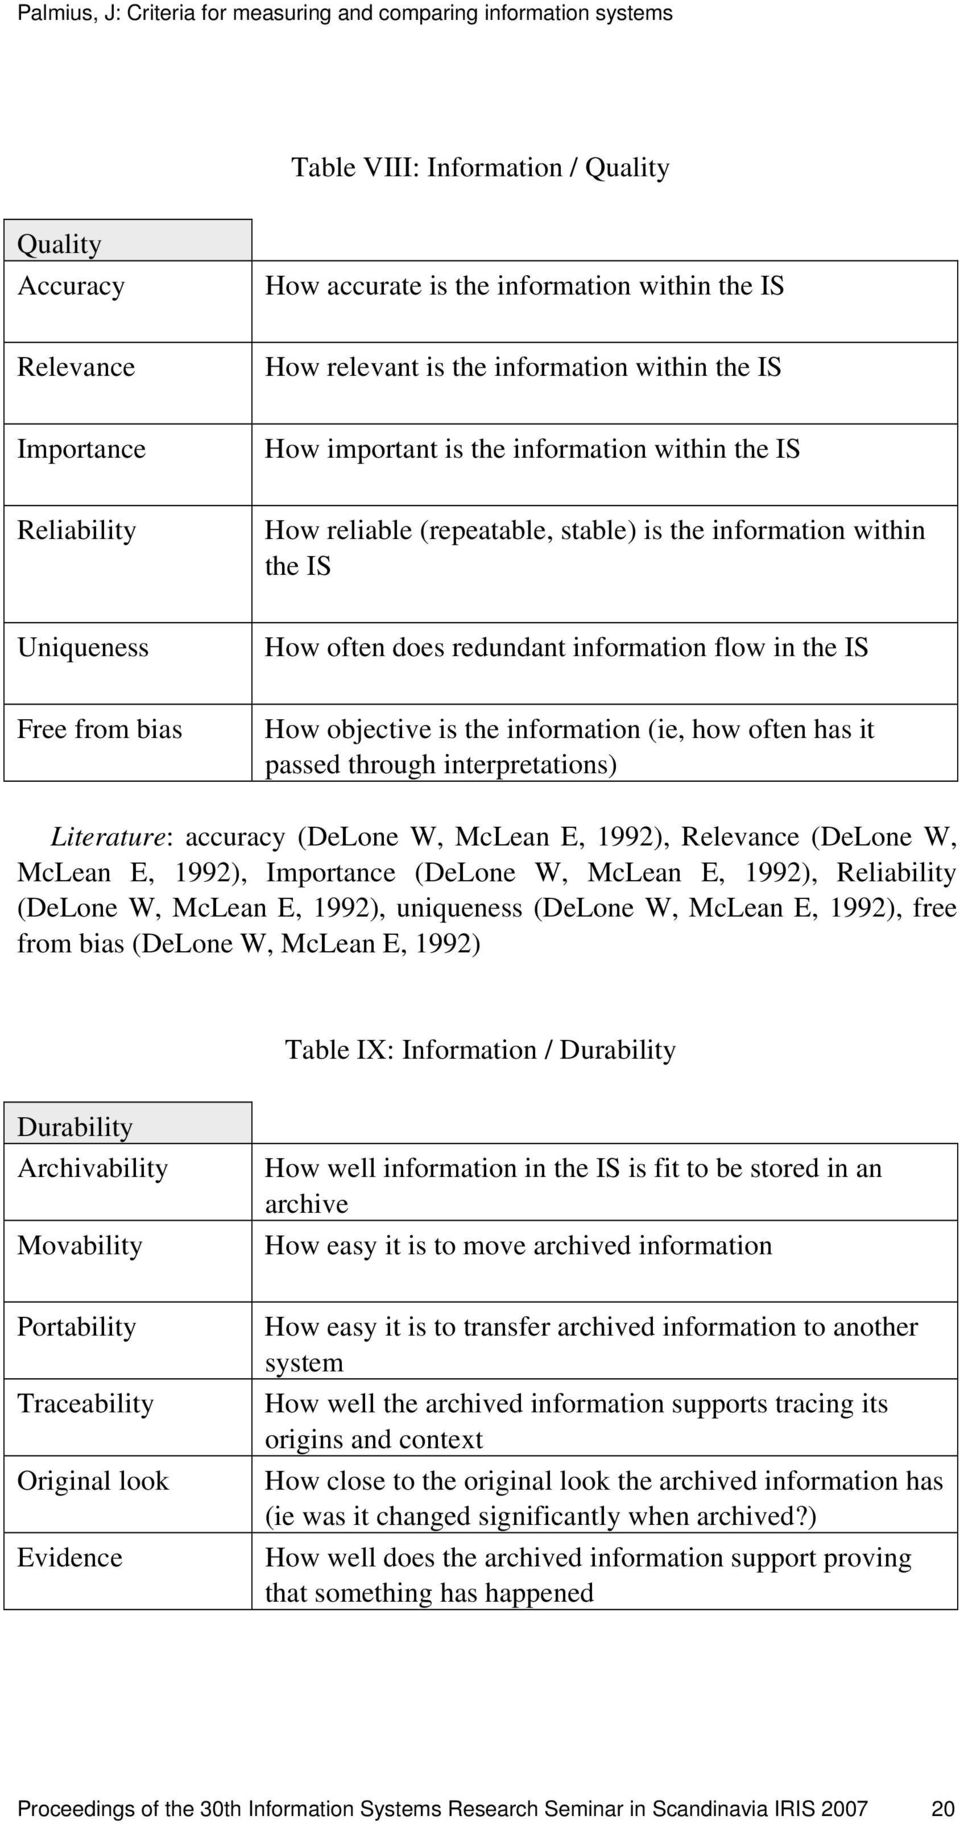 information (ie, how often has it passed through interpretations) Literature: accuracy (DeLone W, McLean E, 1992), Relevance (DeLone W, McLean E, 1992), Importance (DeLone W, McLean E, 1992),